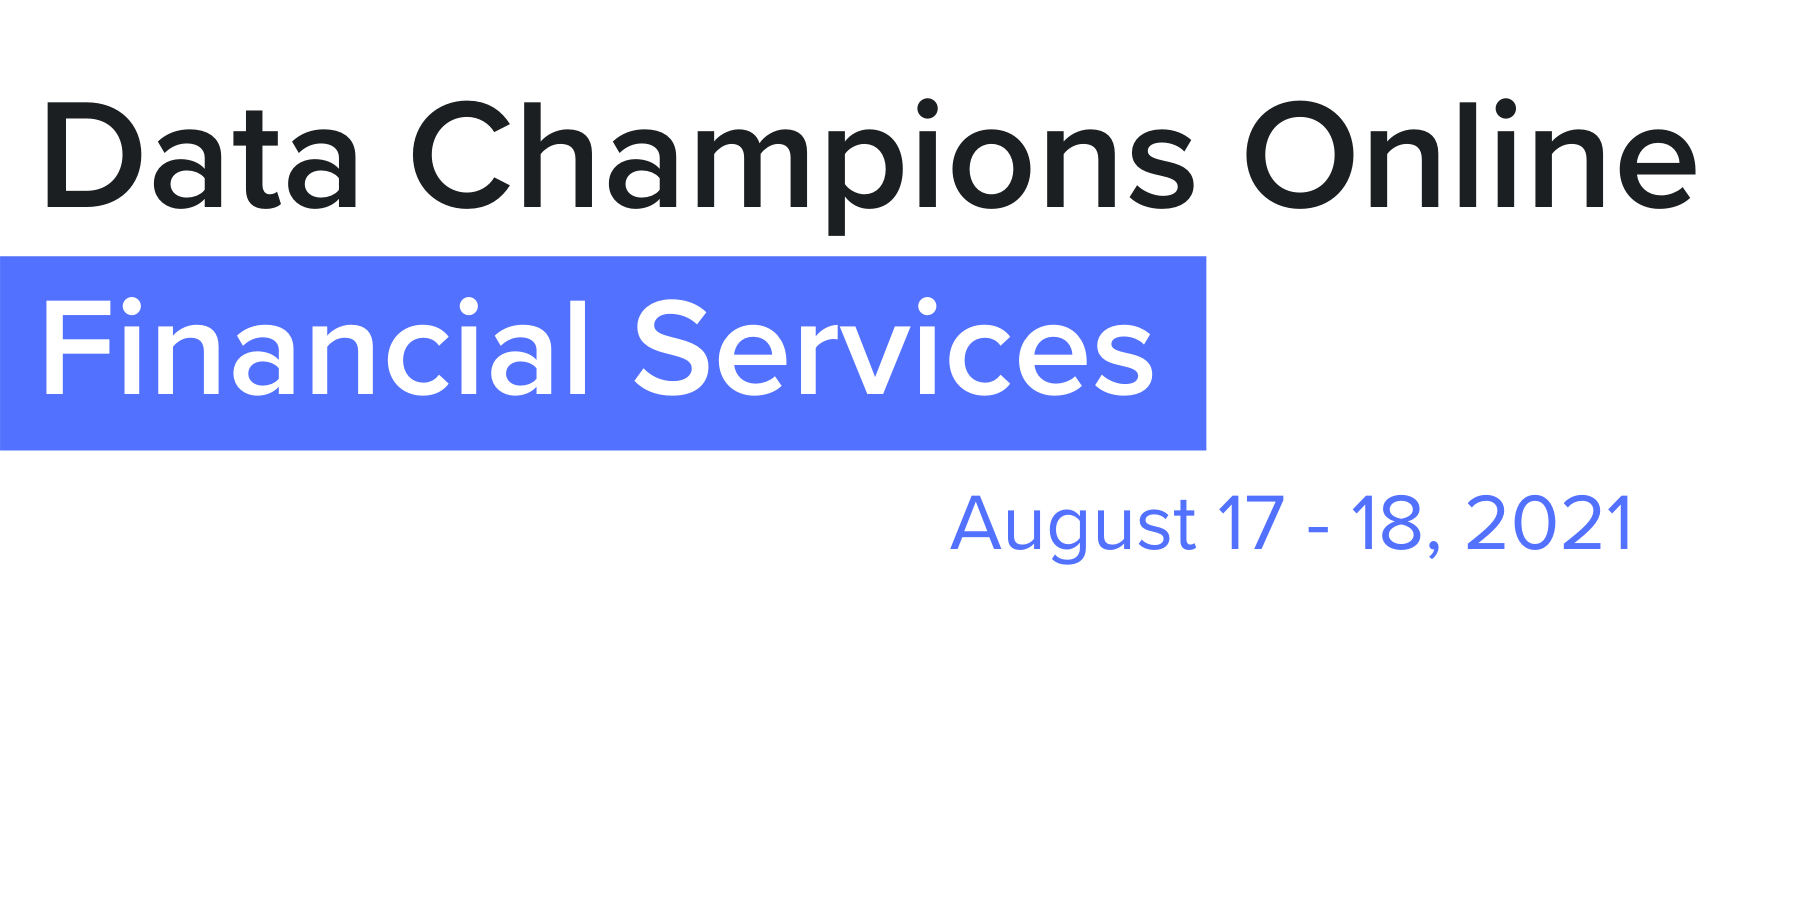 Data Champions Online Financial Services & Executive Think Tanks | August 17 - 18, 2021